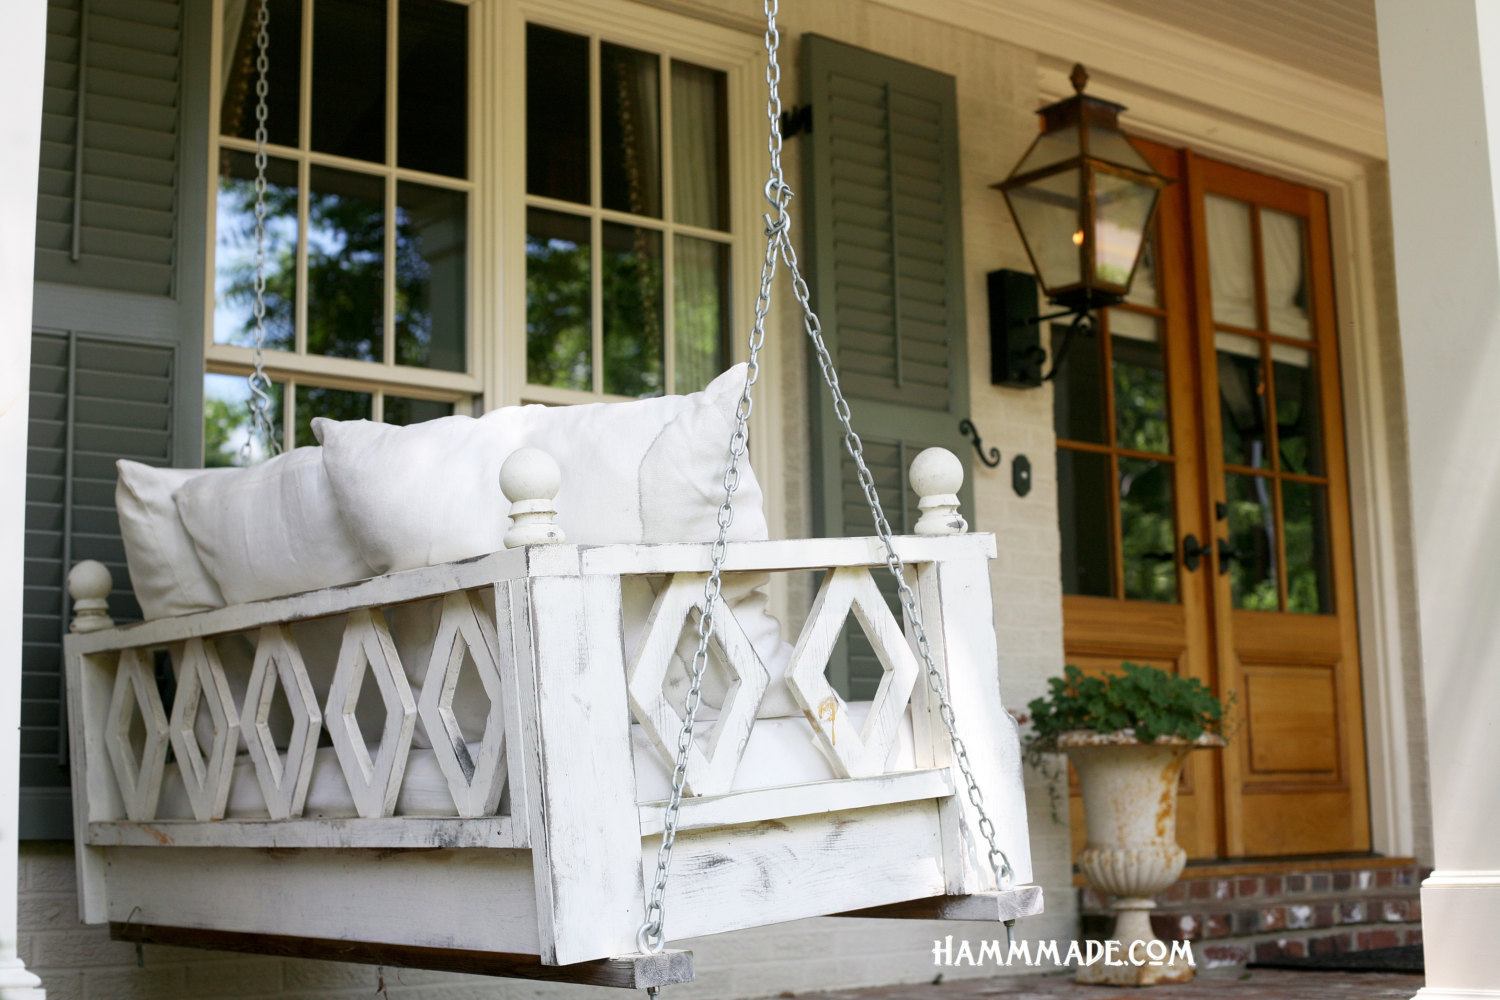 15 Custom Handcrafted Porch Swing Designs - Style Motivation